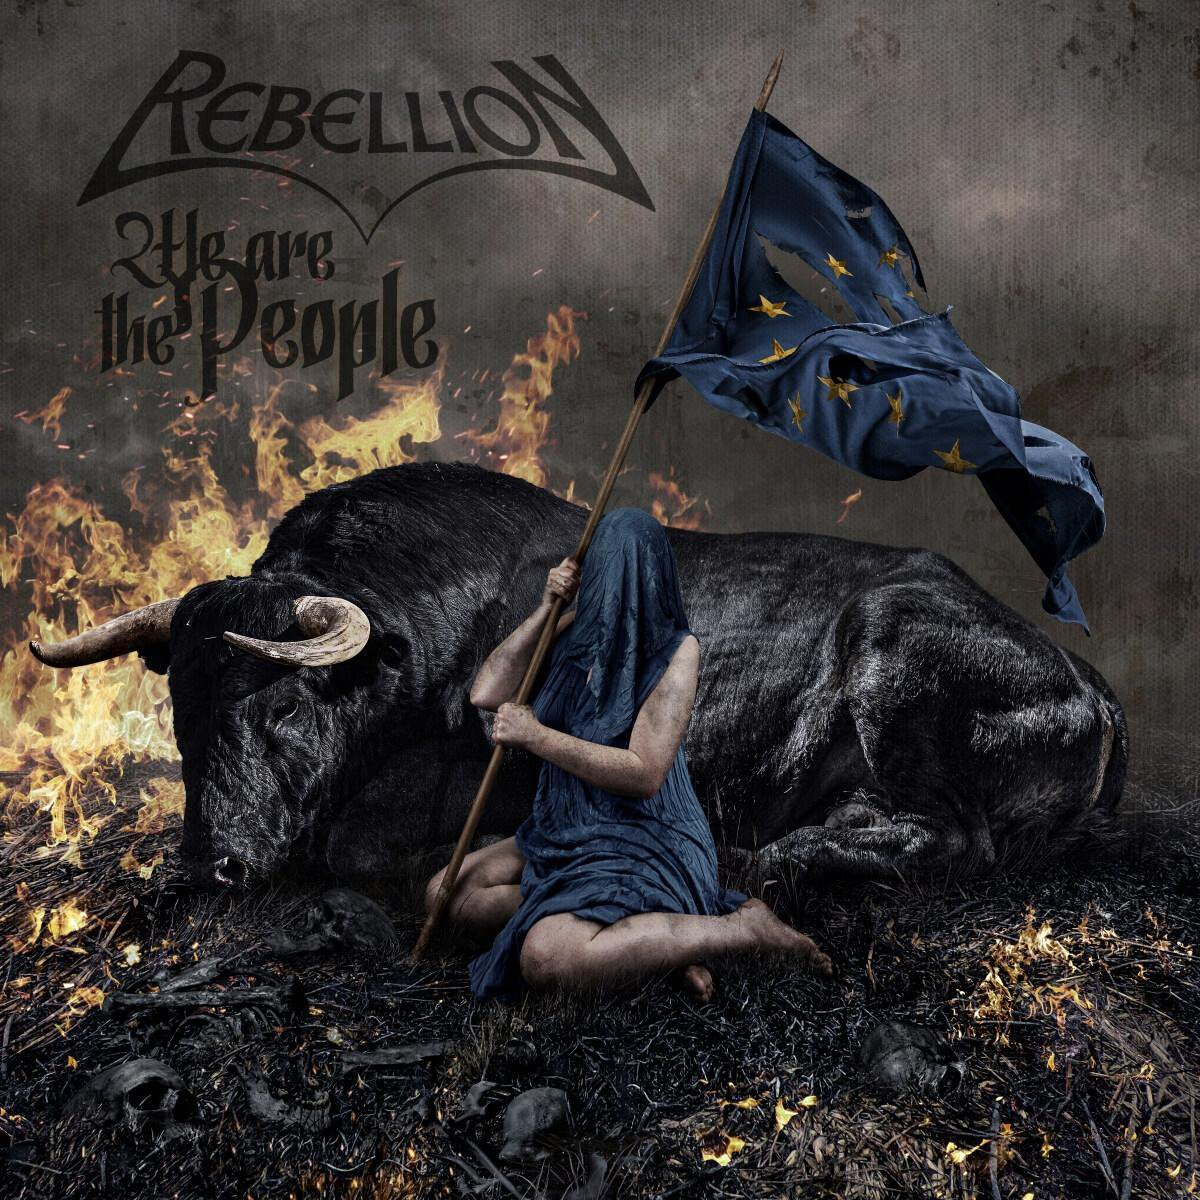 rebellion we are the people album cover